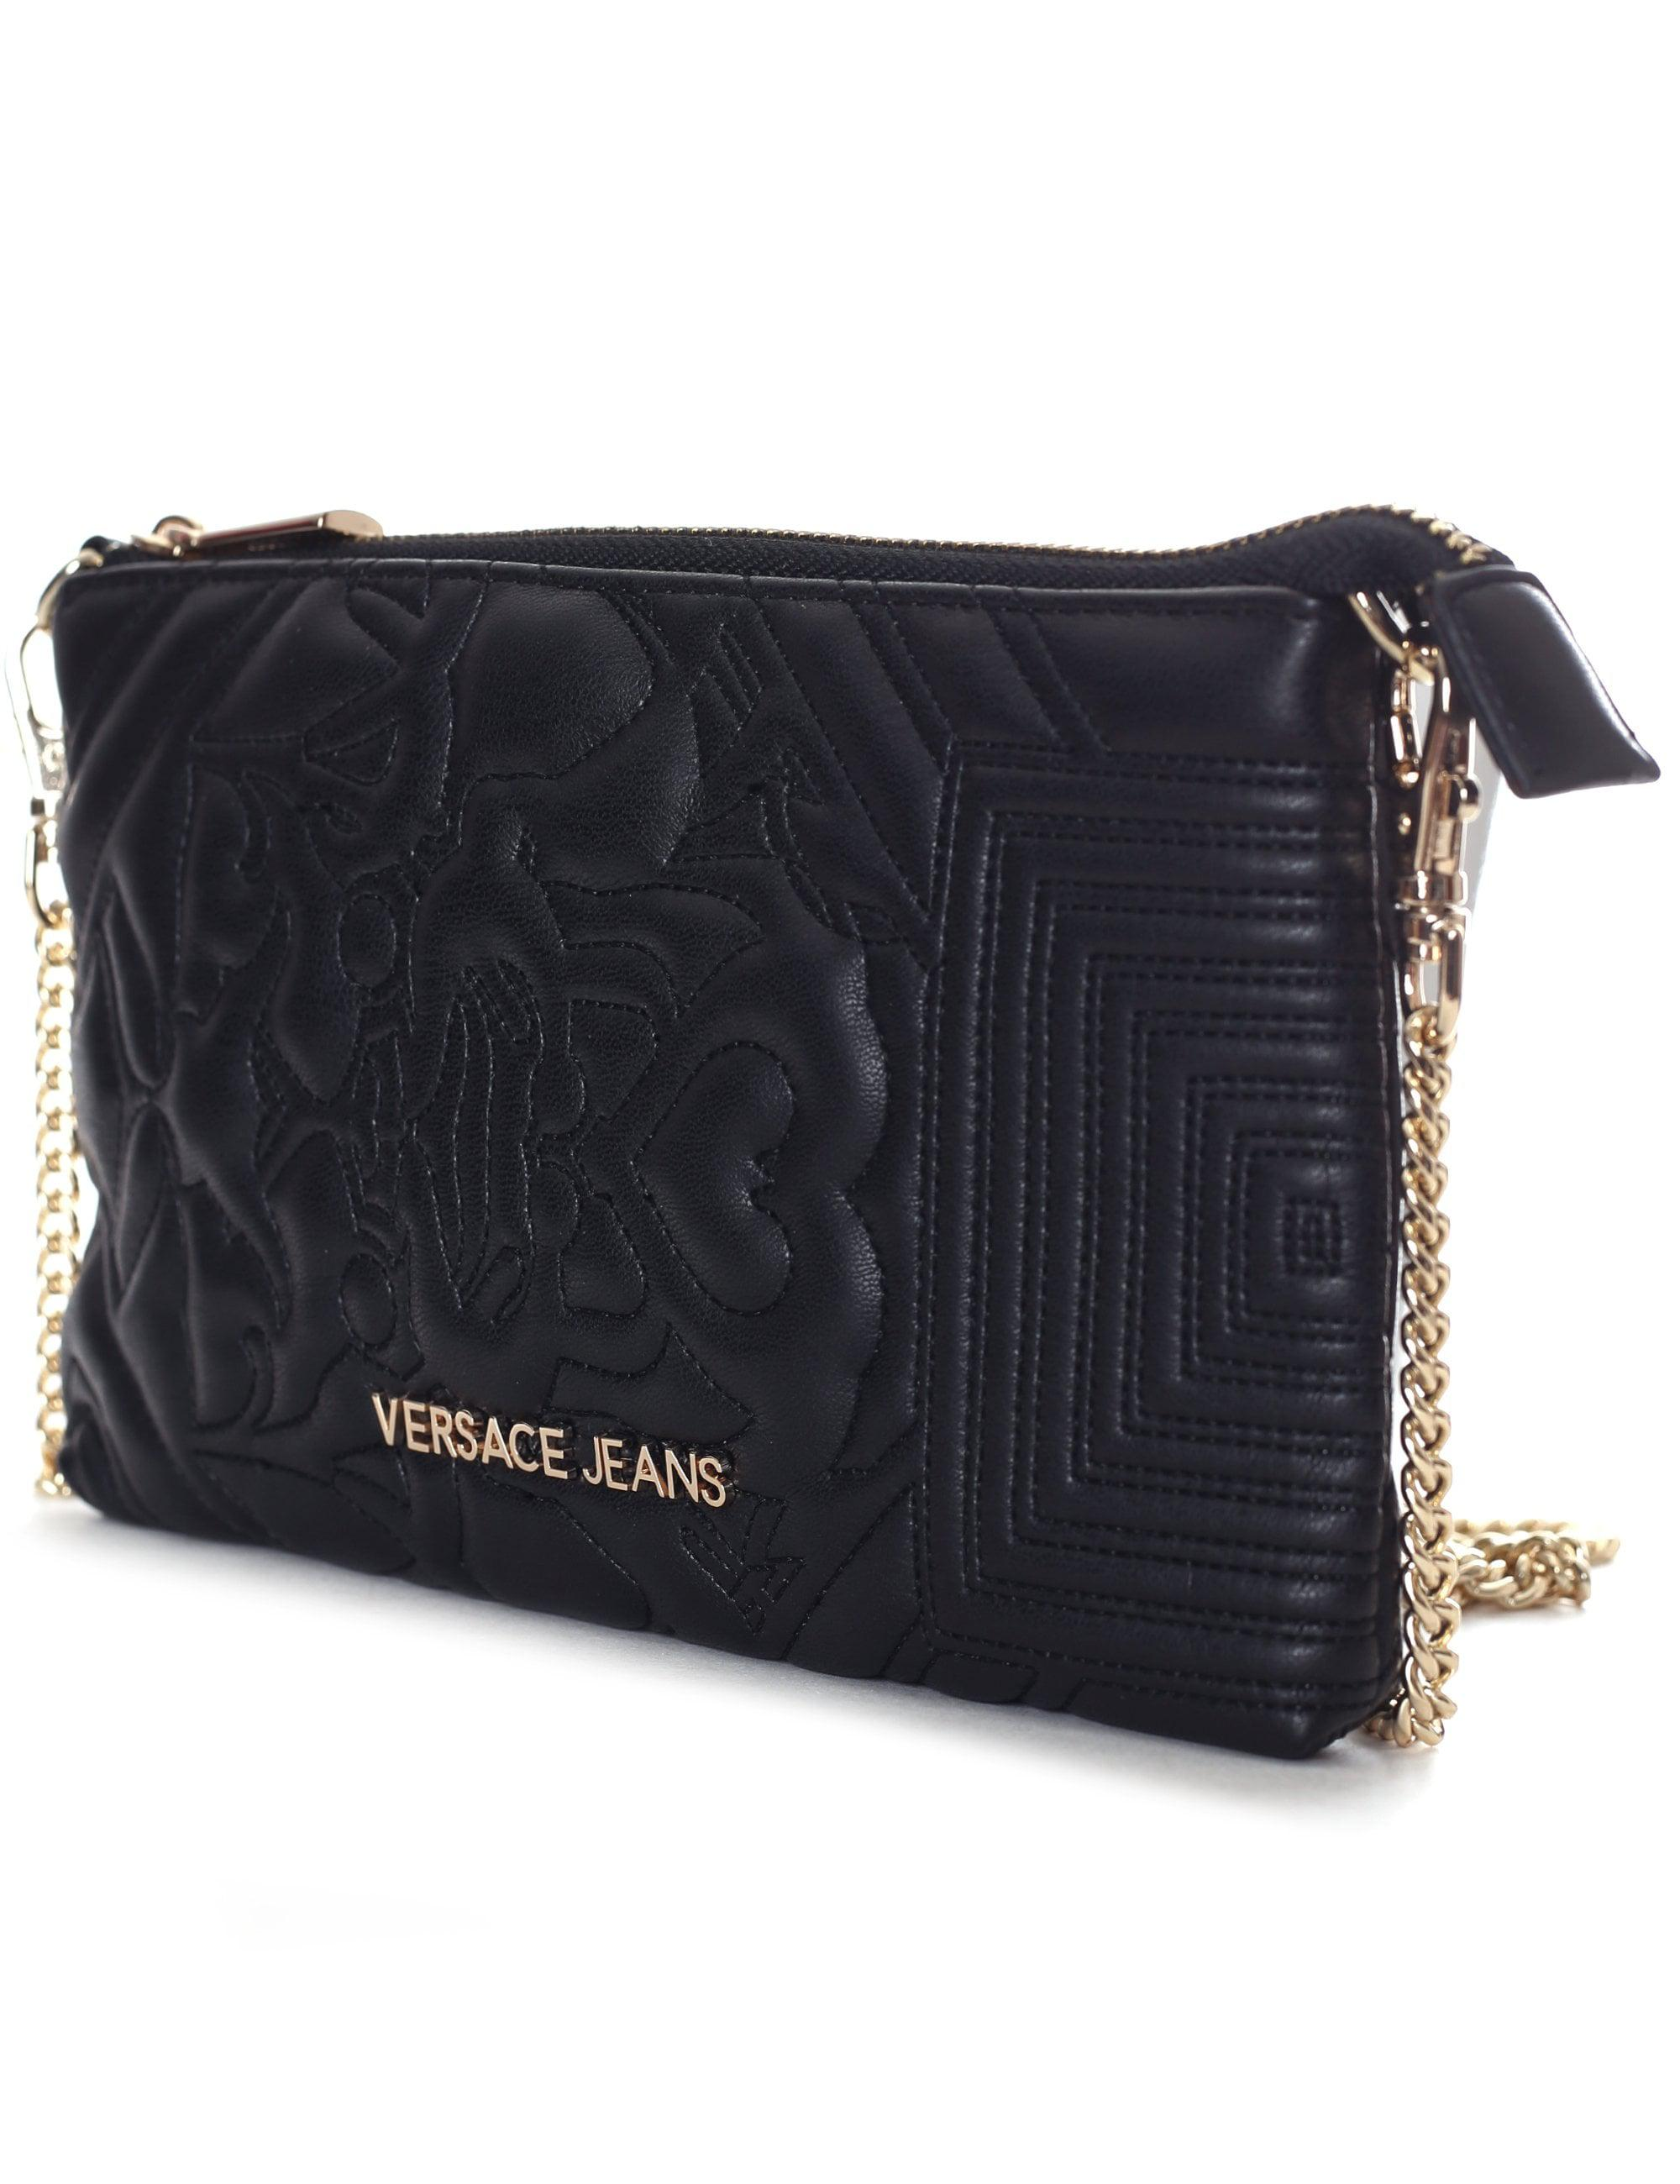 8b9970aec208 Versace Jeans Quilted Wave Small Crossbody Bag in Black - Lyst